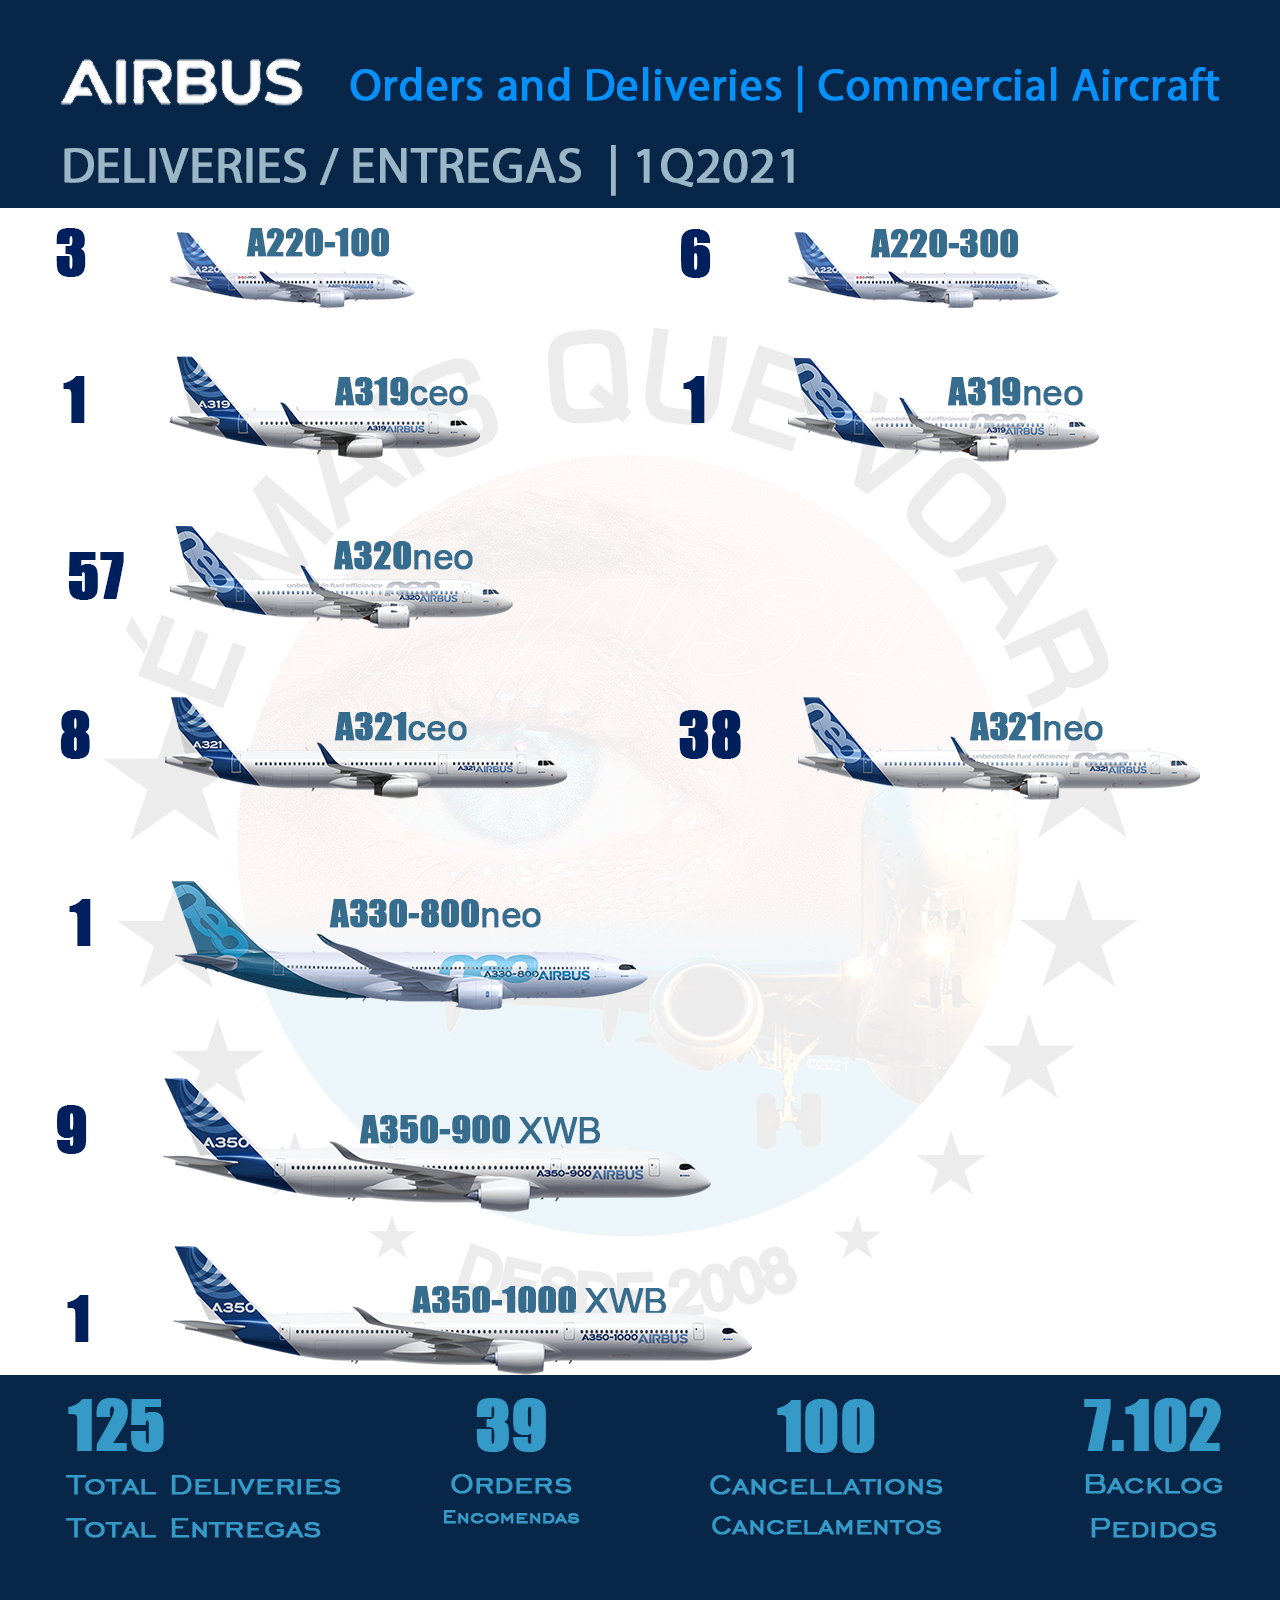 AIRBUS: TOTAL DELIVERIES AND ORDERS 1Q2021   MORE THAN FLY